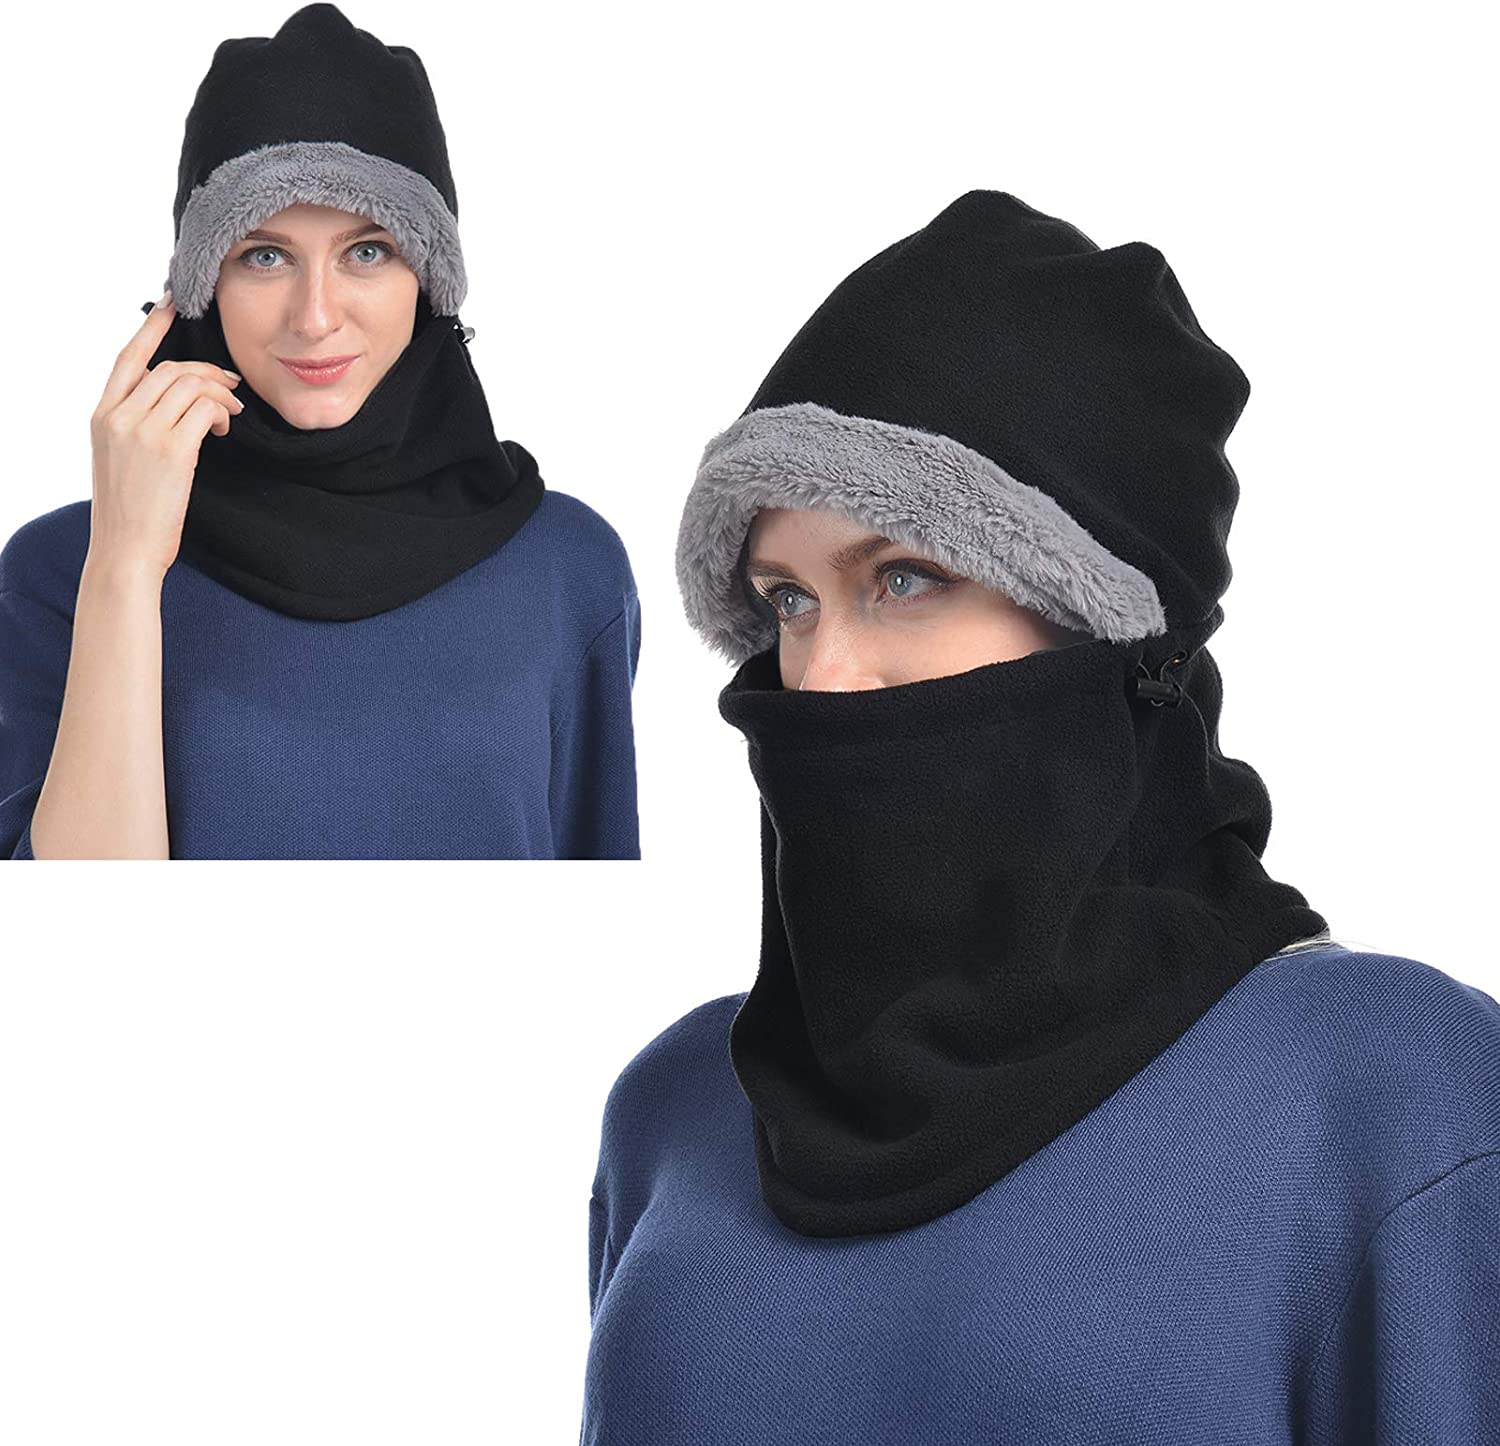 Details about  /Warm Head and Face Mask Winter Hat 1Hole Balaclava Hood Cycling Breathable Cover